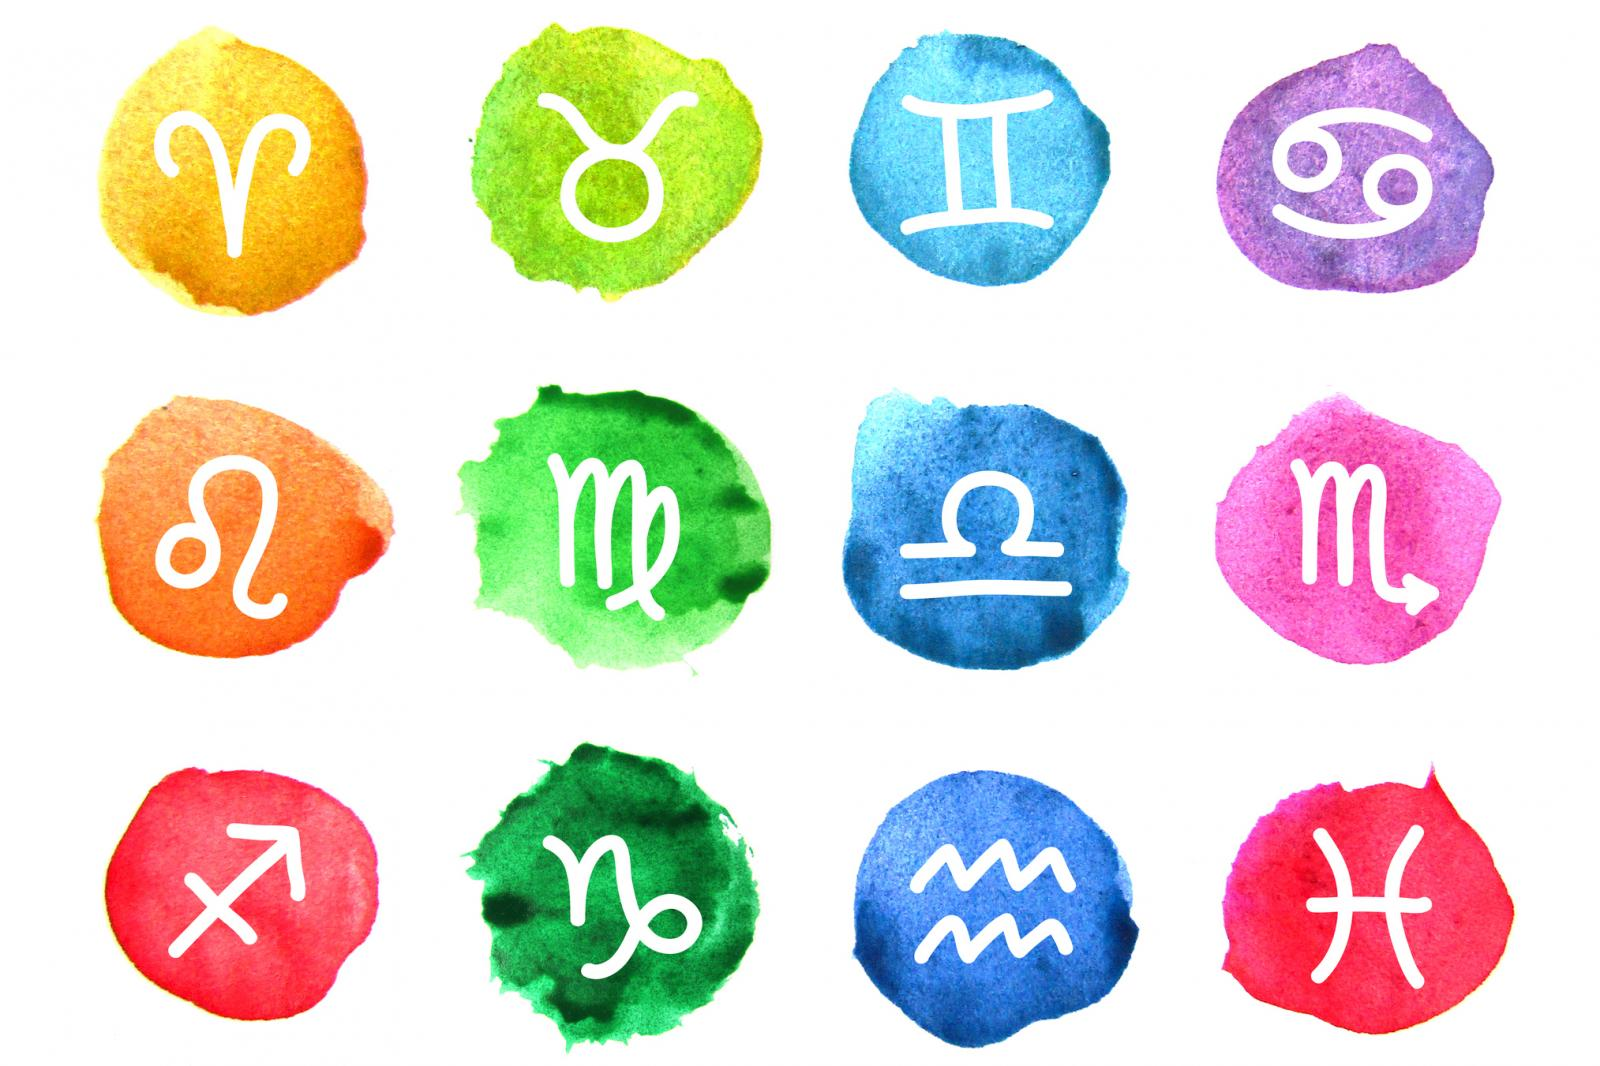 Your Best Quality As Told By Your Zodiac Sign